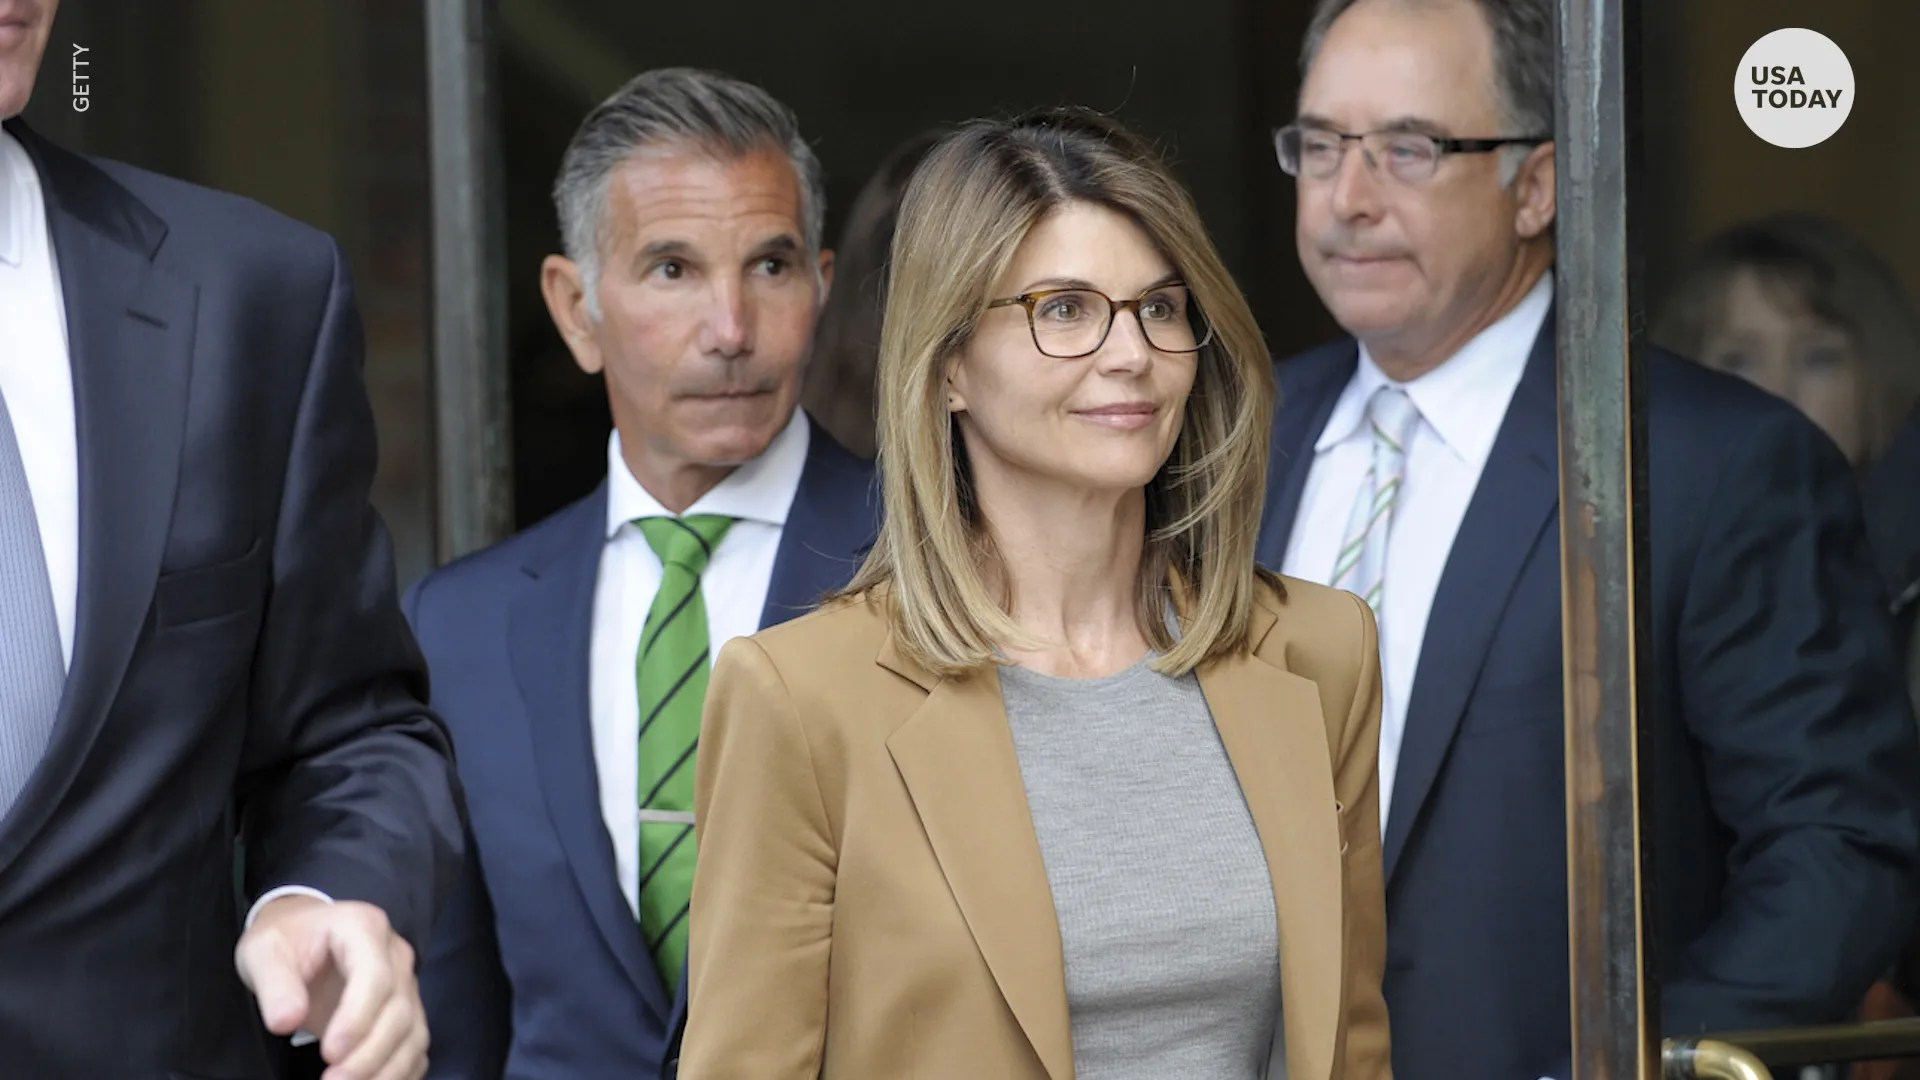 Lori Loughlin Withholding Discovery In Admissions Scandal